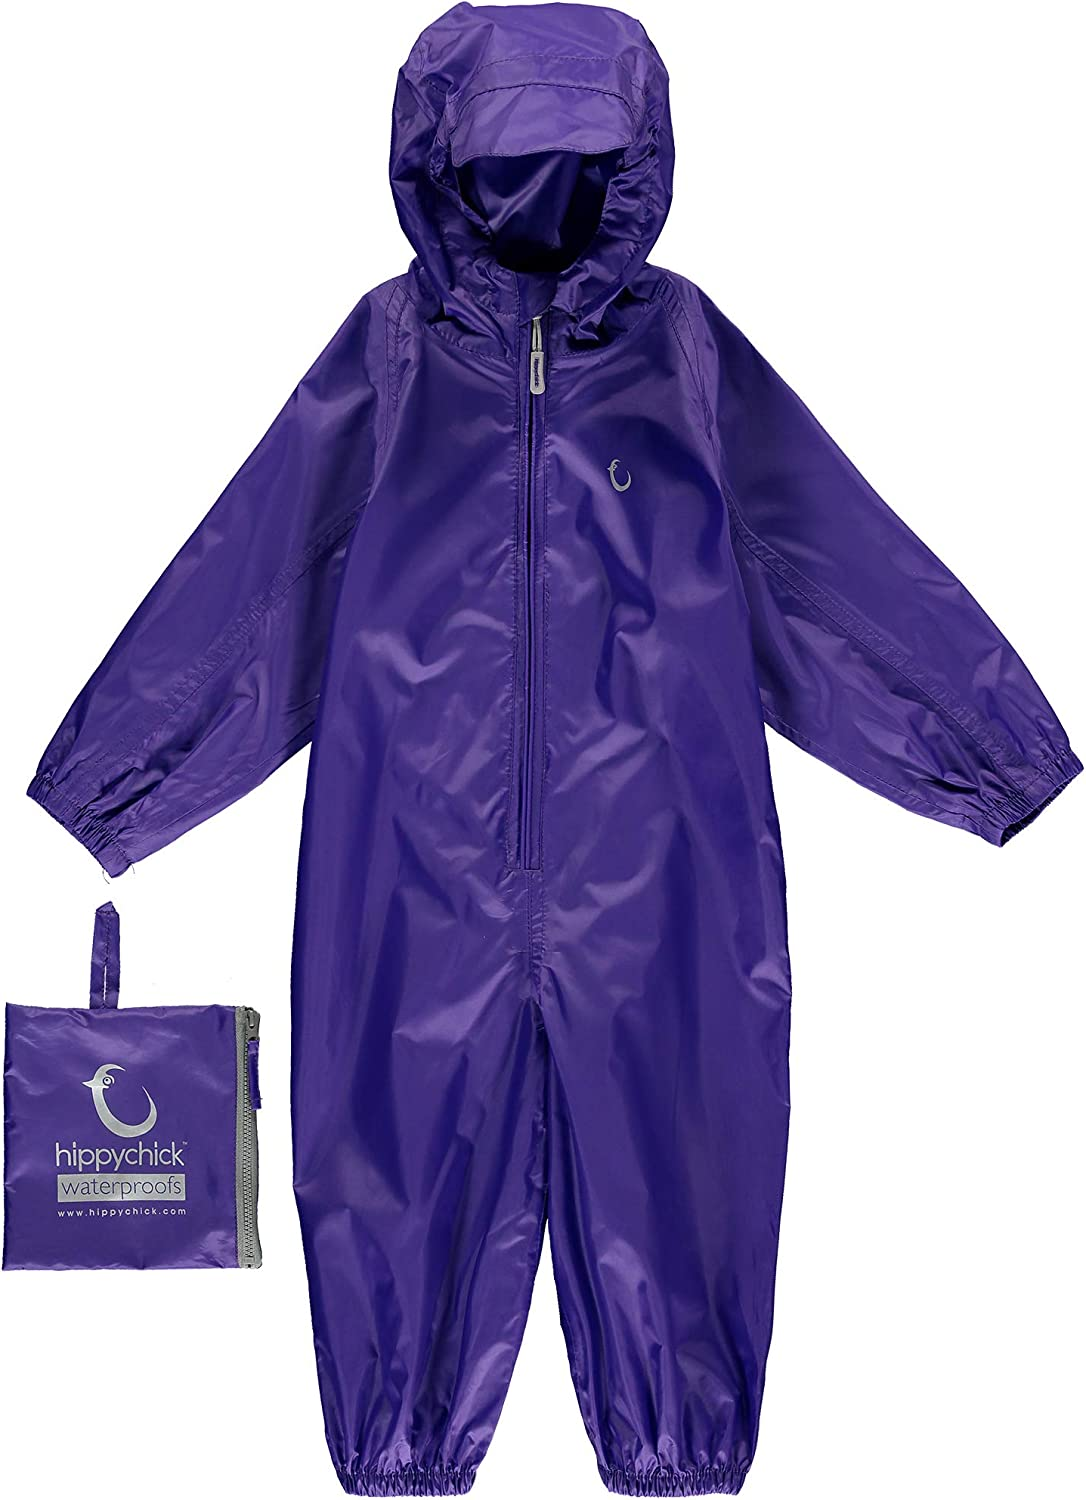 Ultra Violet Hippychick Childrens Waterproof Packasuit All in One Suit